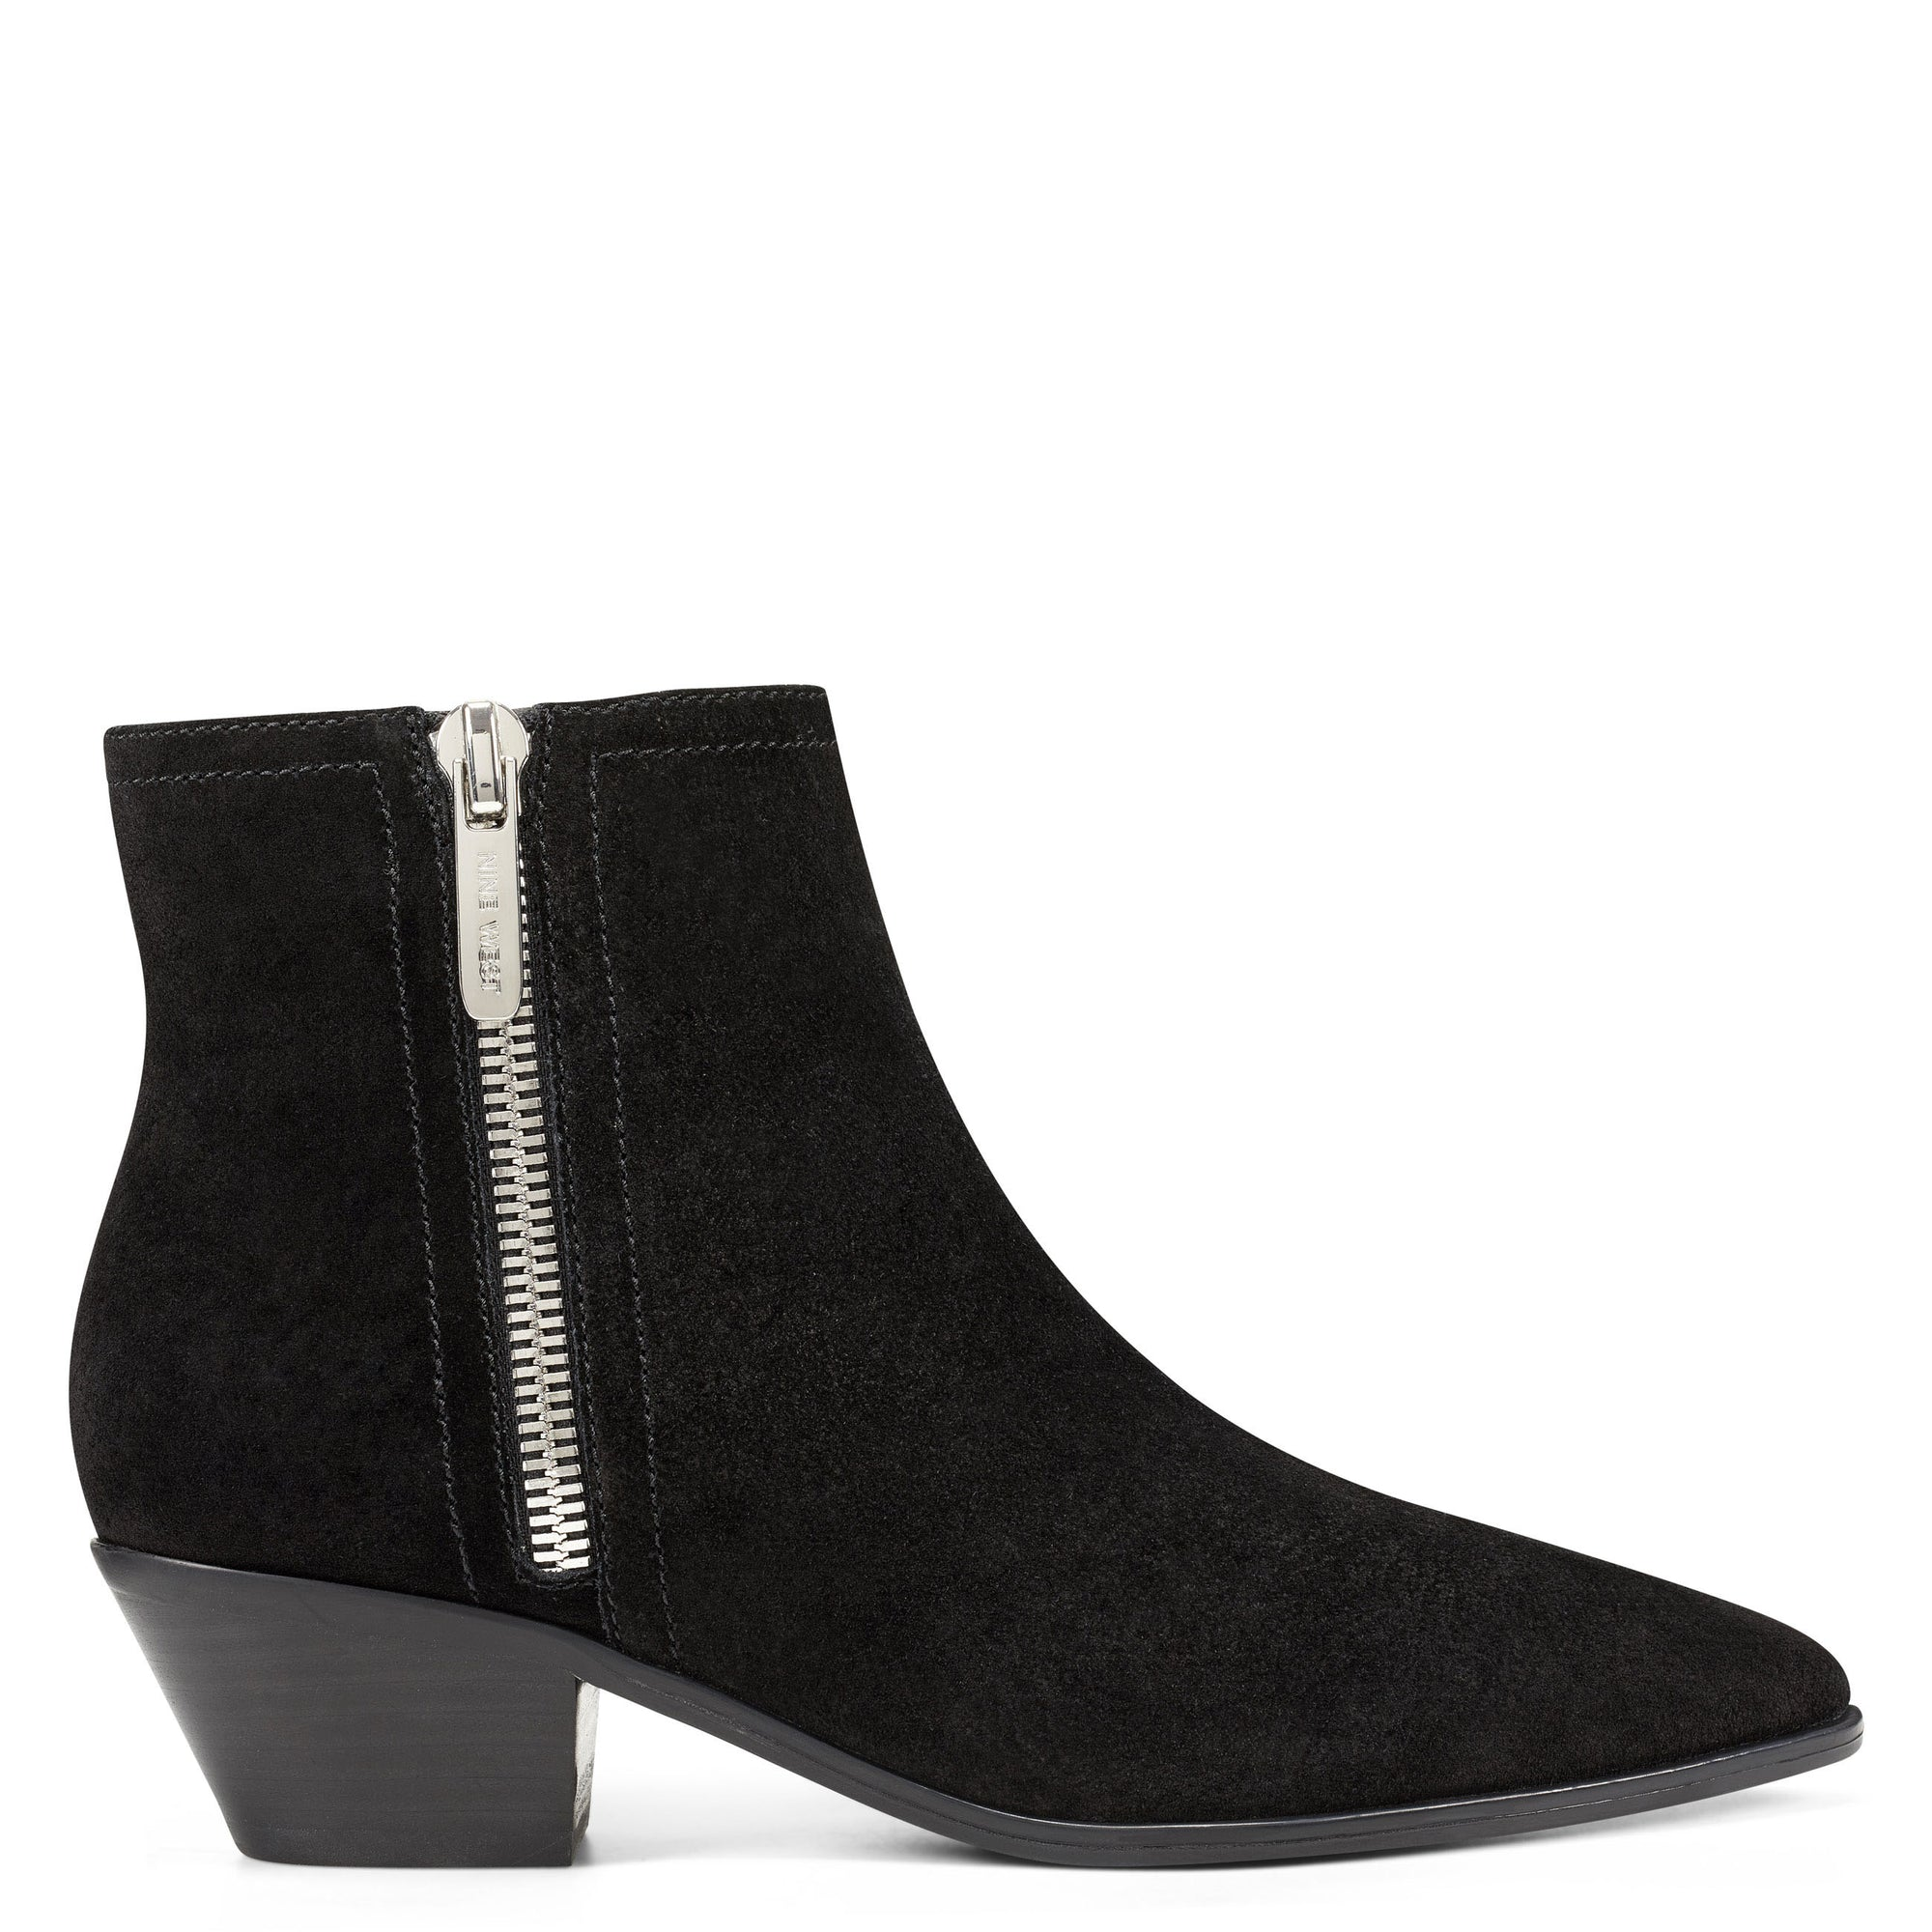 elissa-booties-in-black-suede